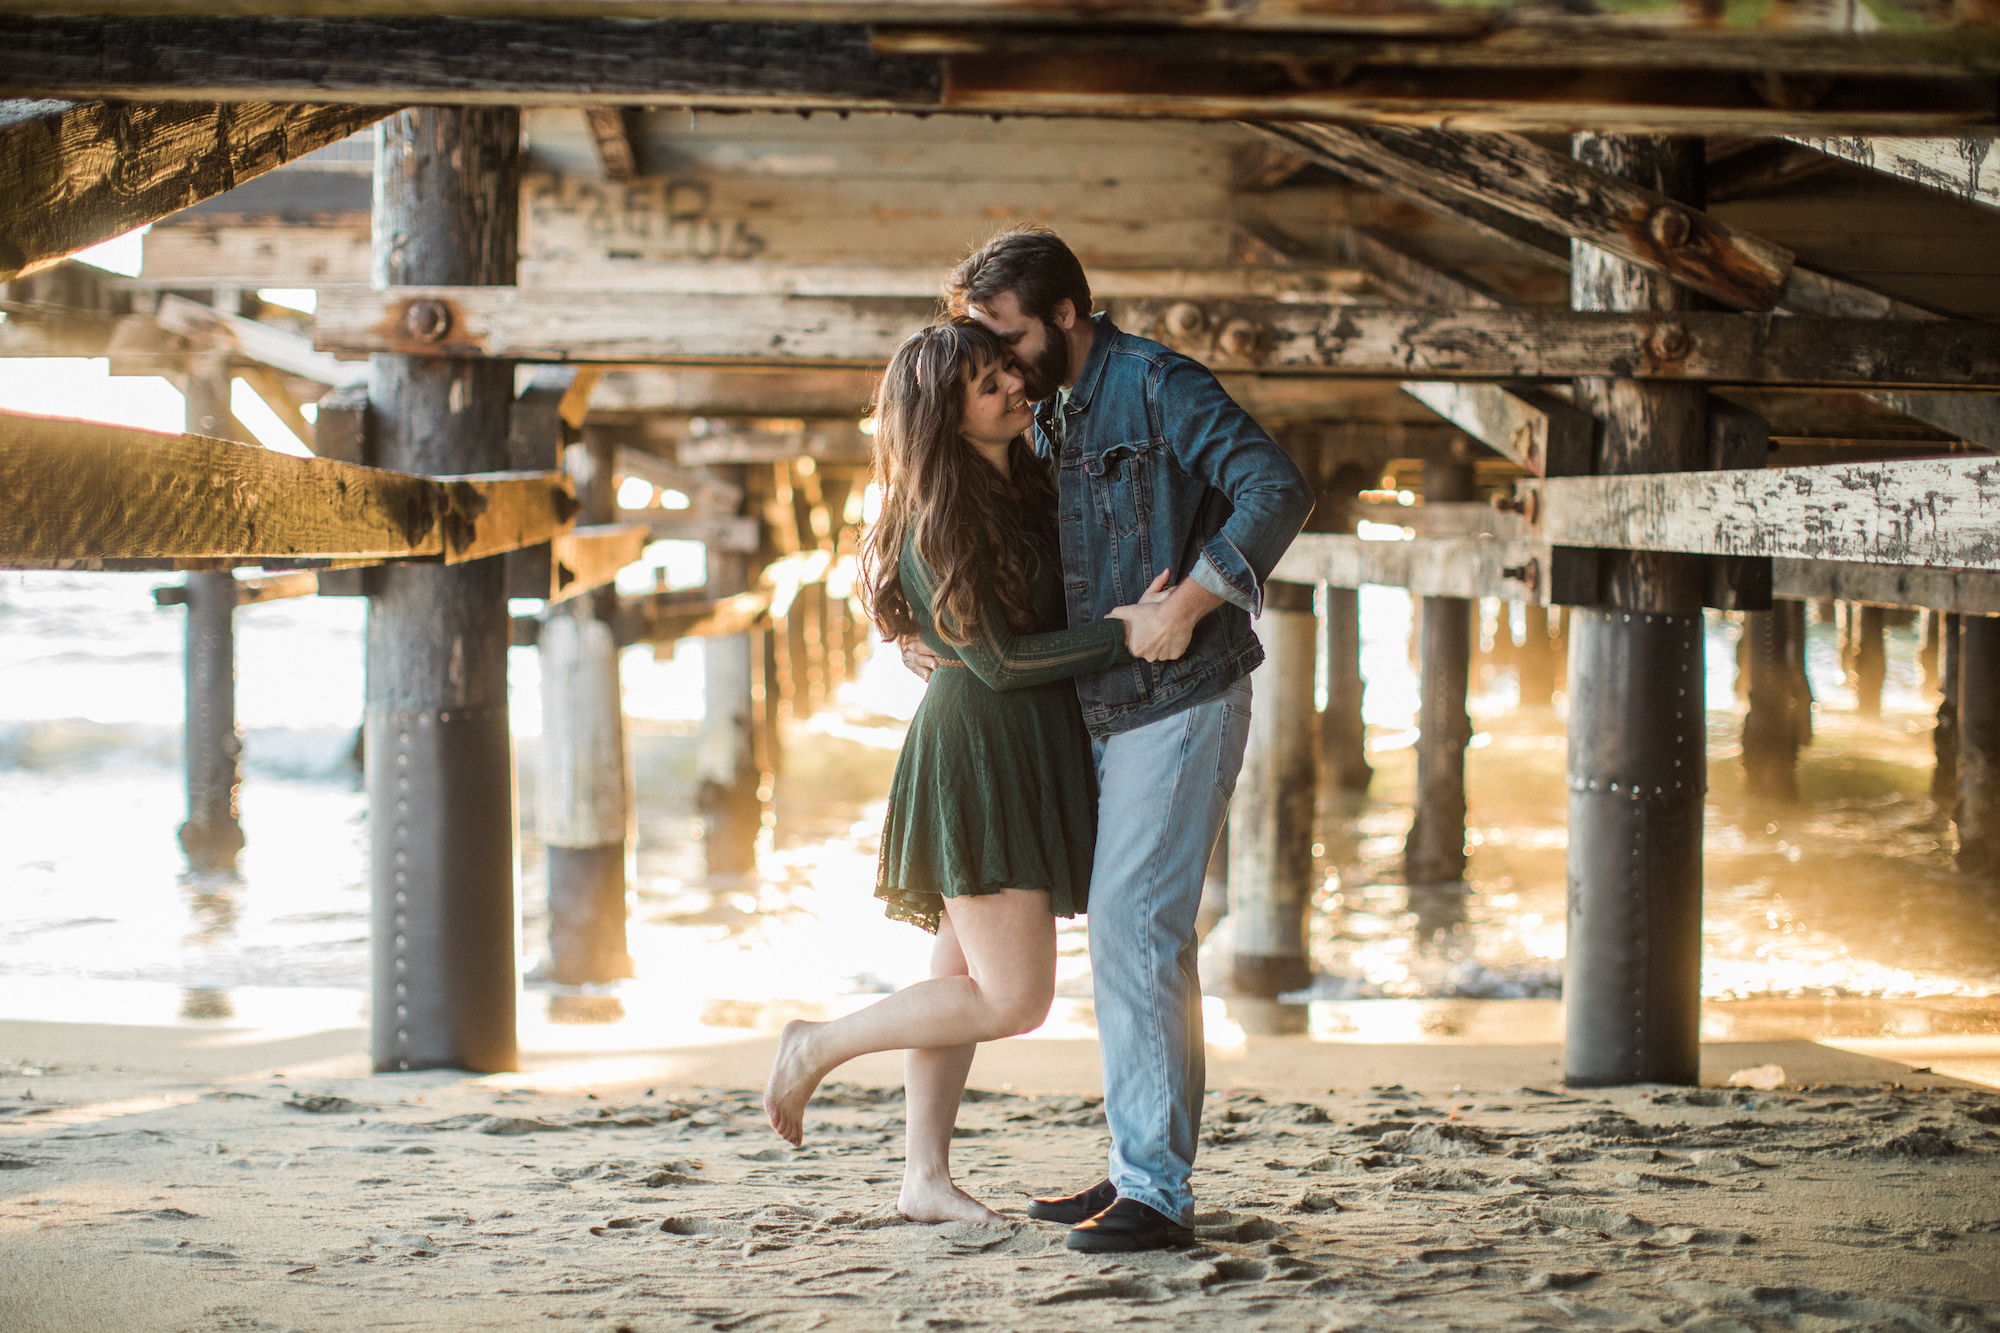 SUNDAY Nov 24, 2019   Redondo Pier | Redondo Beach  $280  20 minutes, 25 images FULLY BOOKED